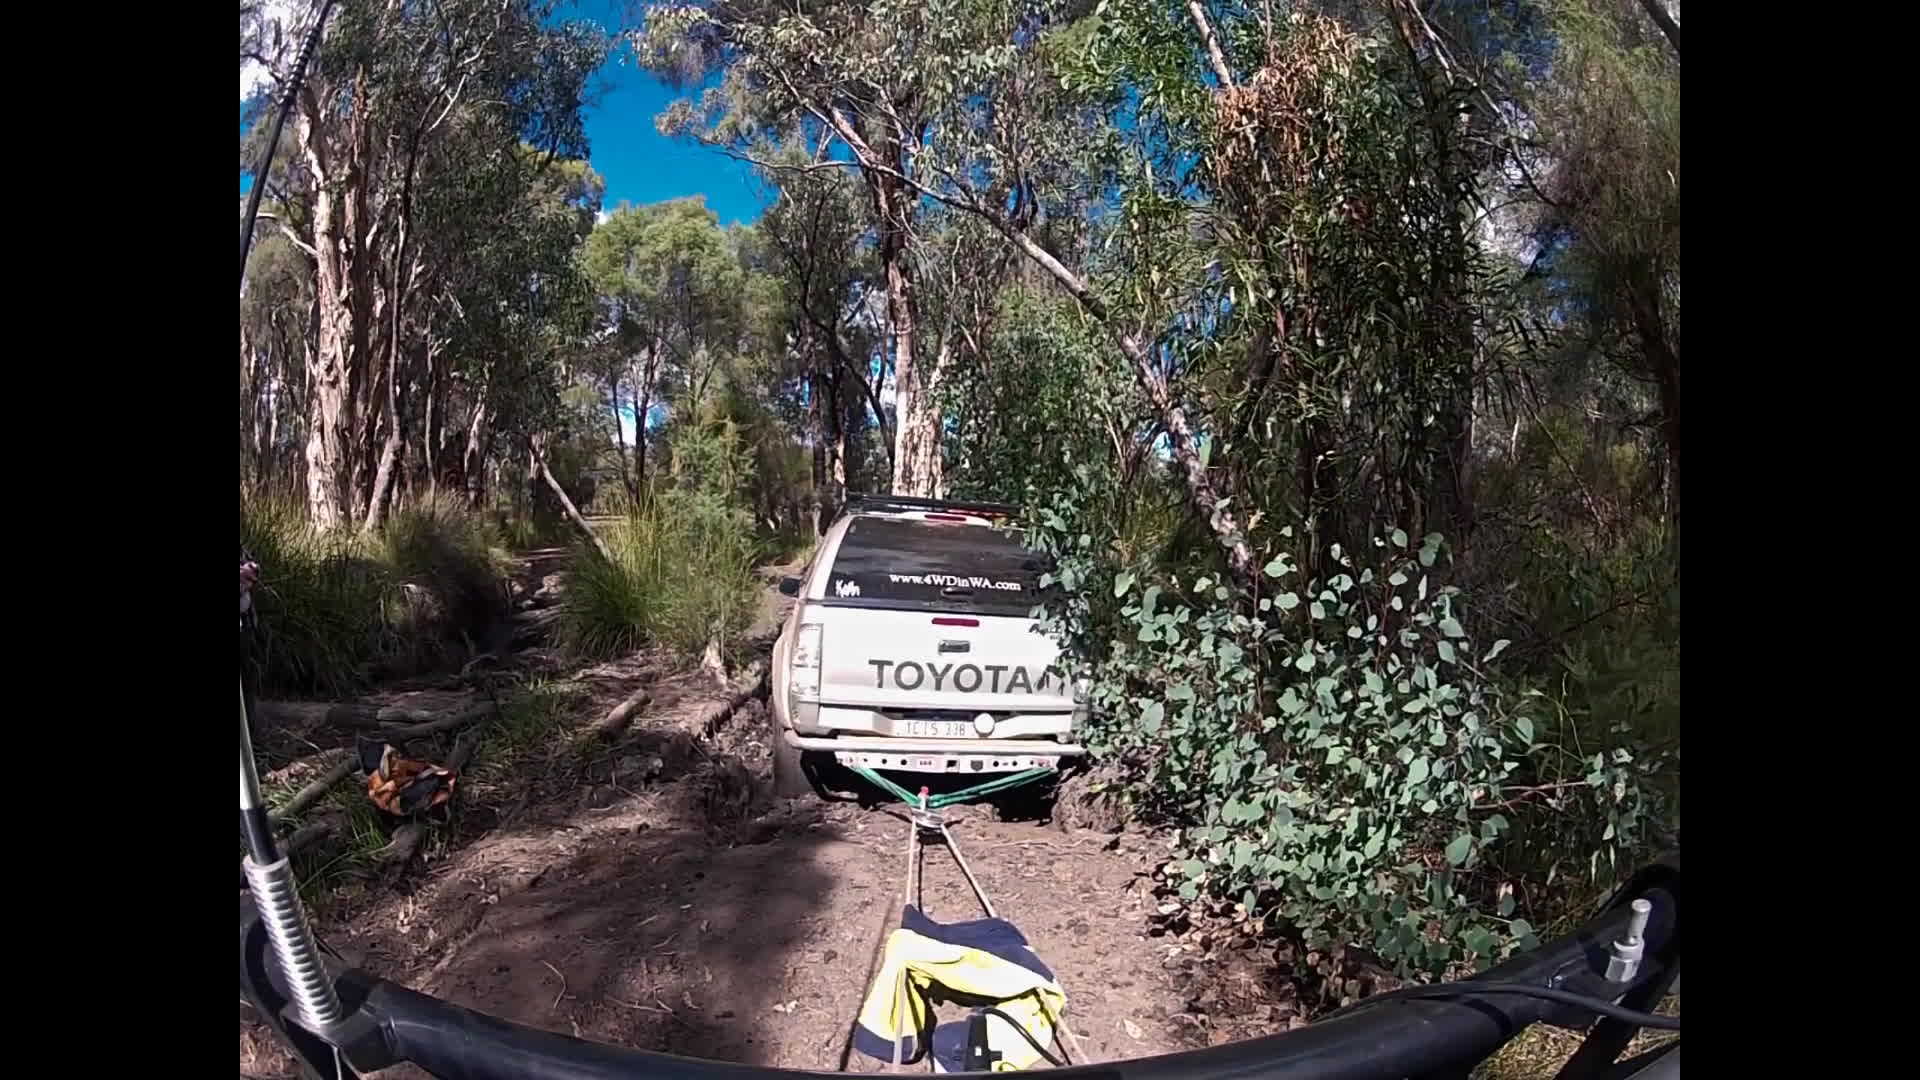 4wdinwa.com, mundaring recovery, winch recovery, 4x4 offroad Winch Recovery GIFs